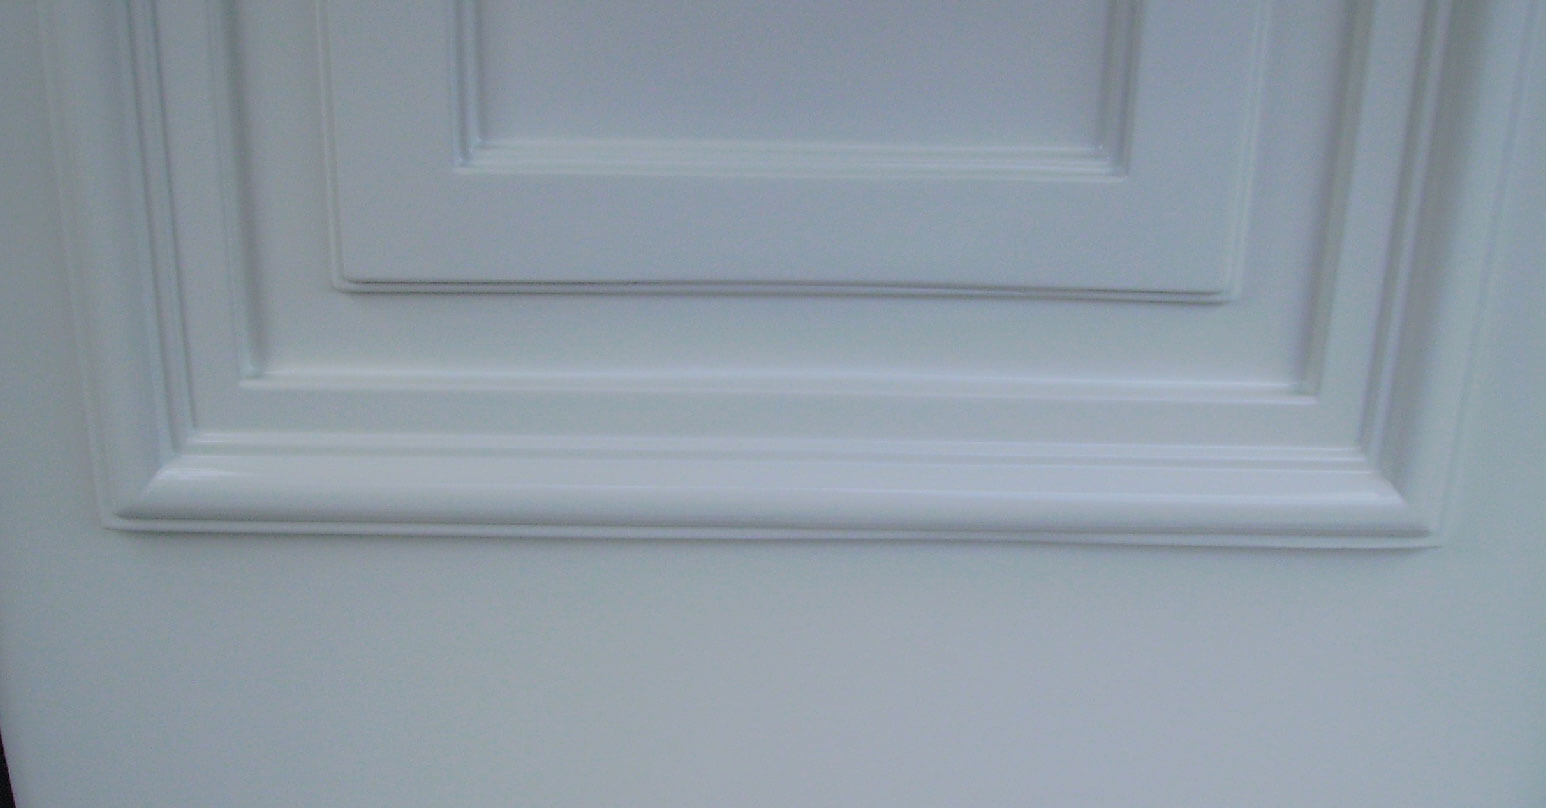 Cracked UPVC door - After repair